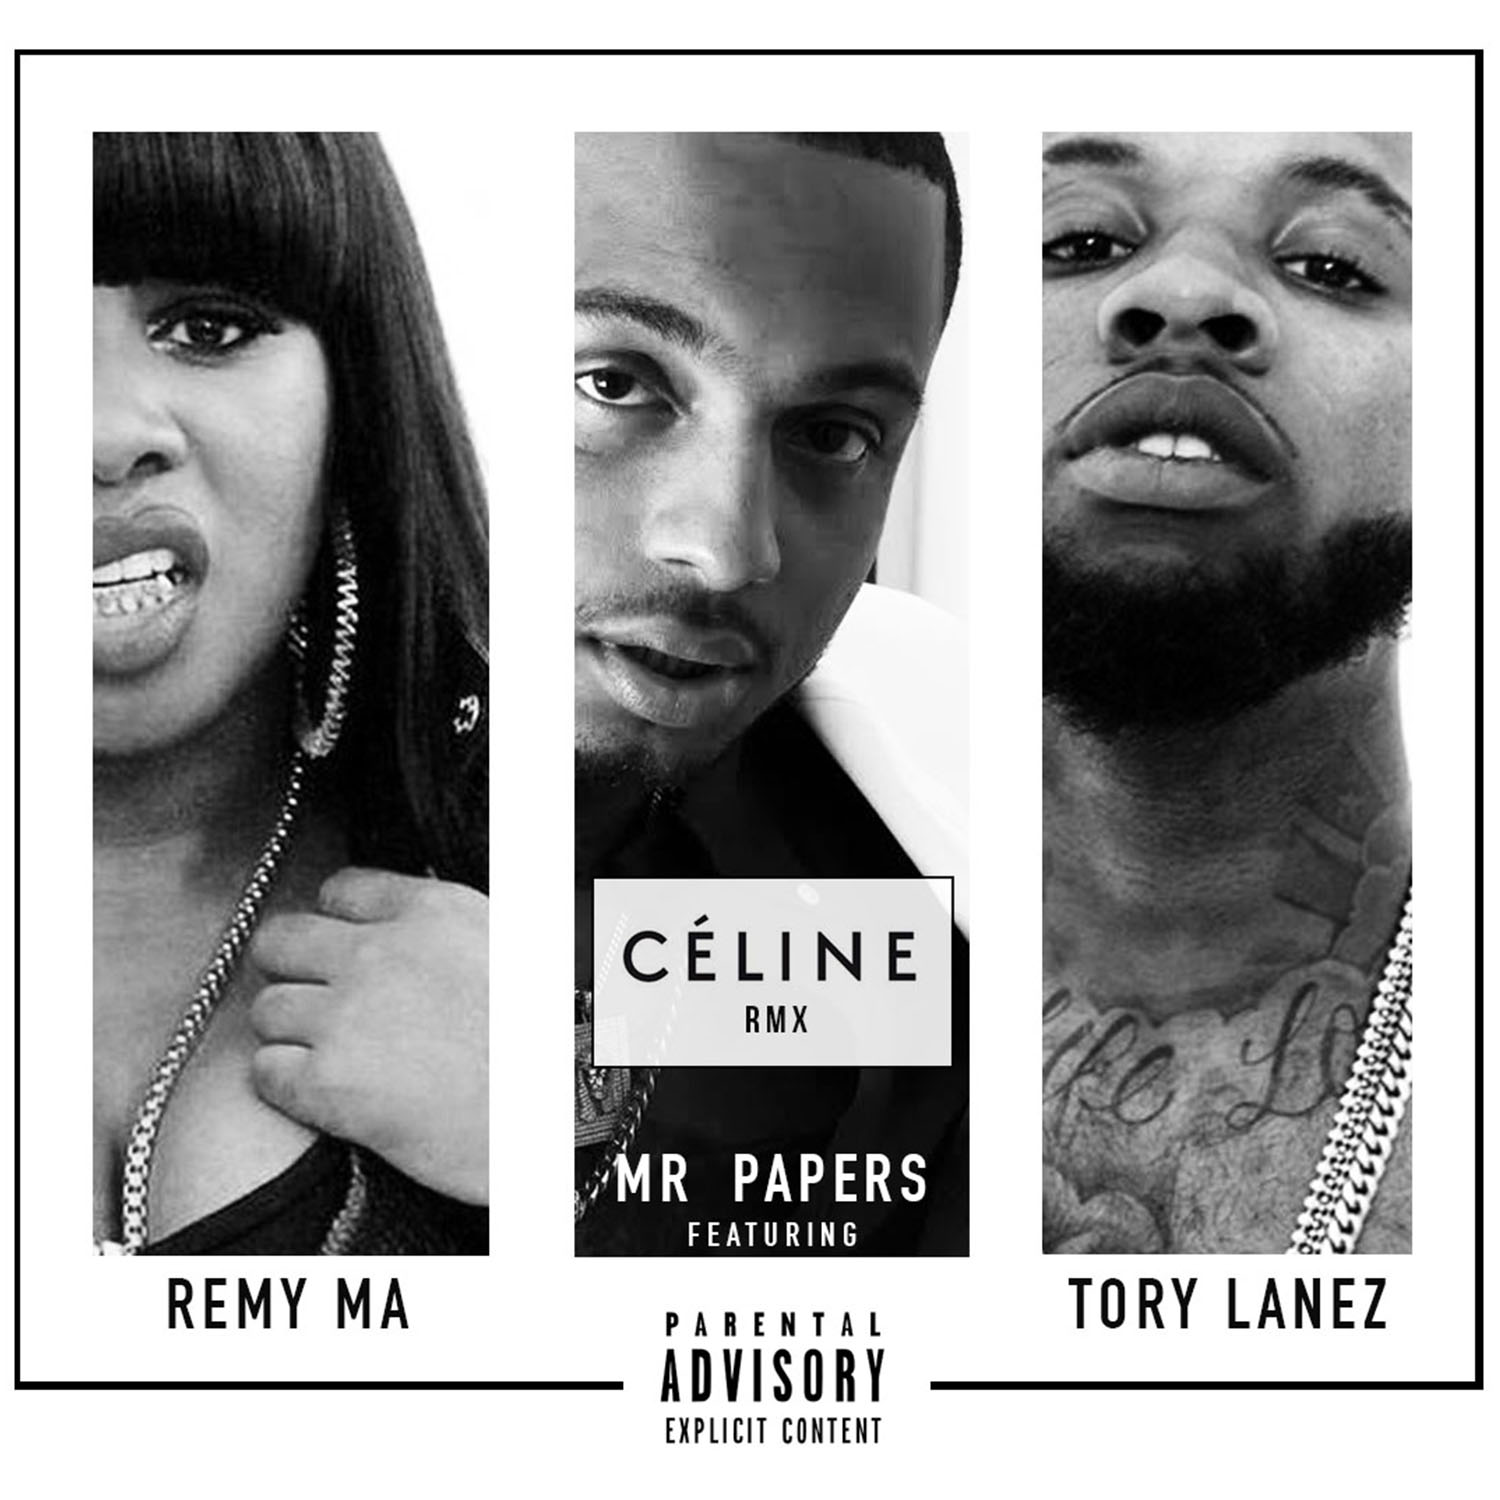 Mr. Papers ft. Remy Ma & Tory Lanez – Celine (remix)